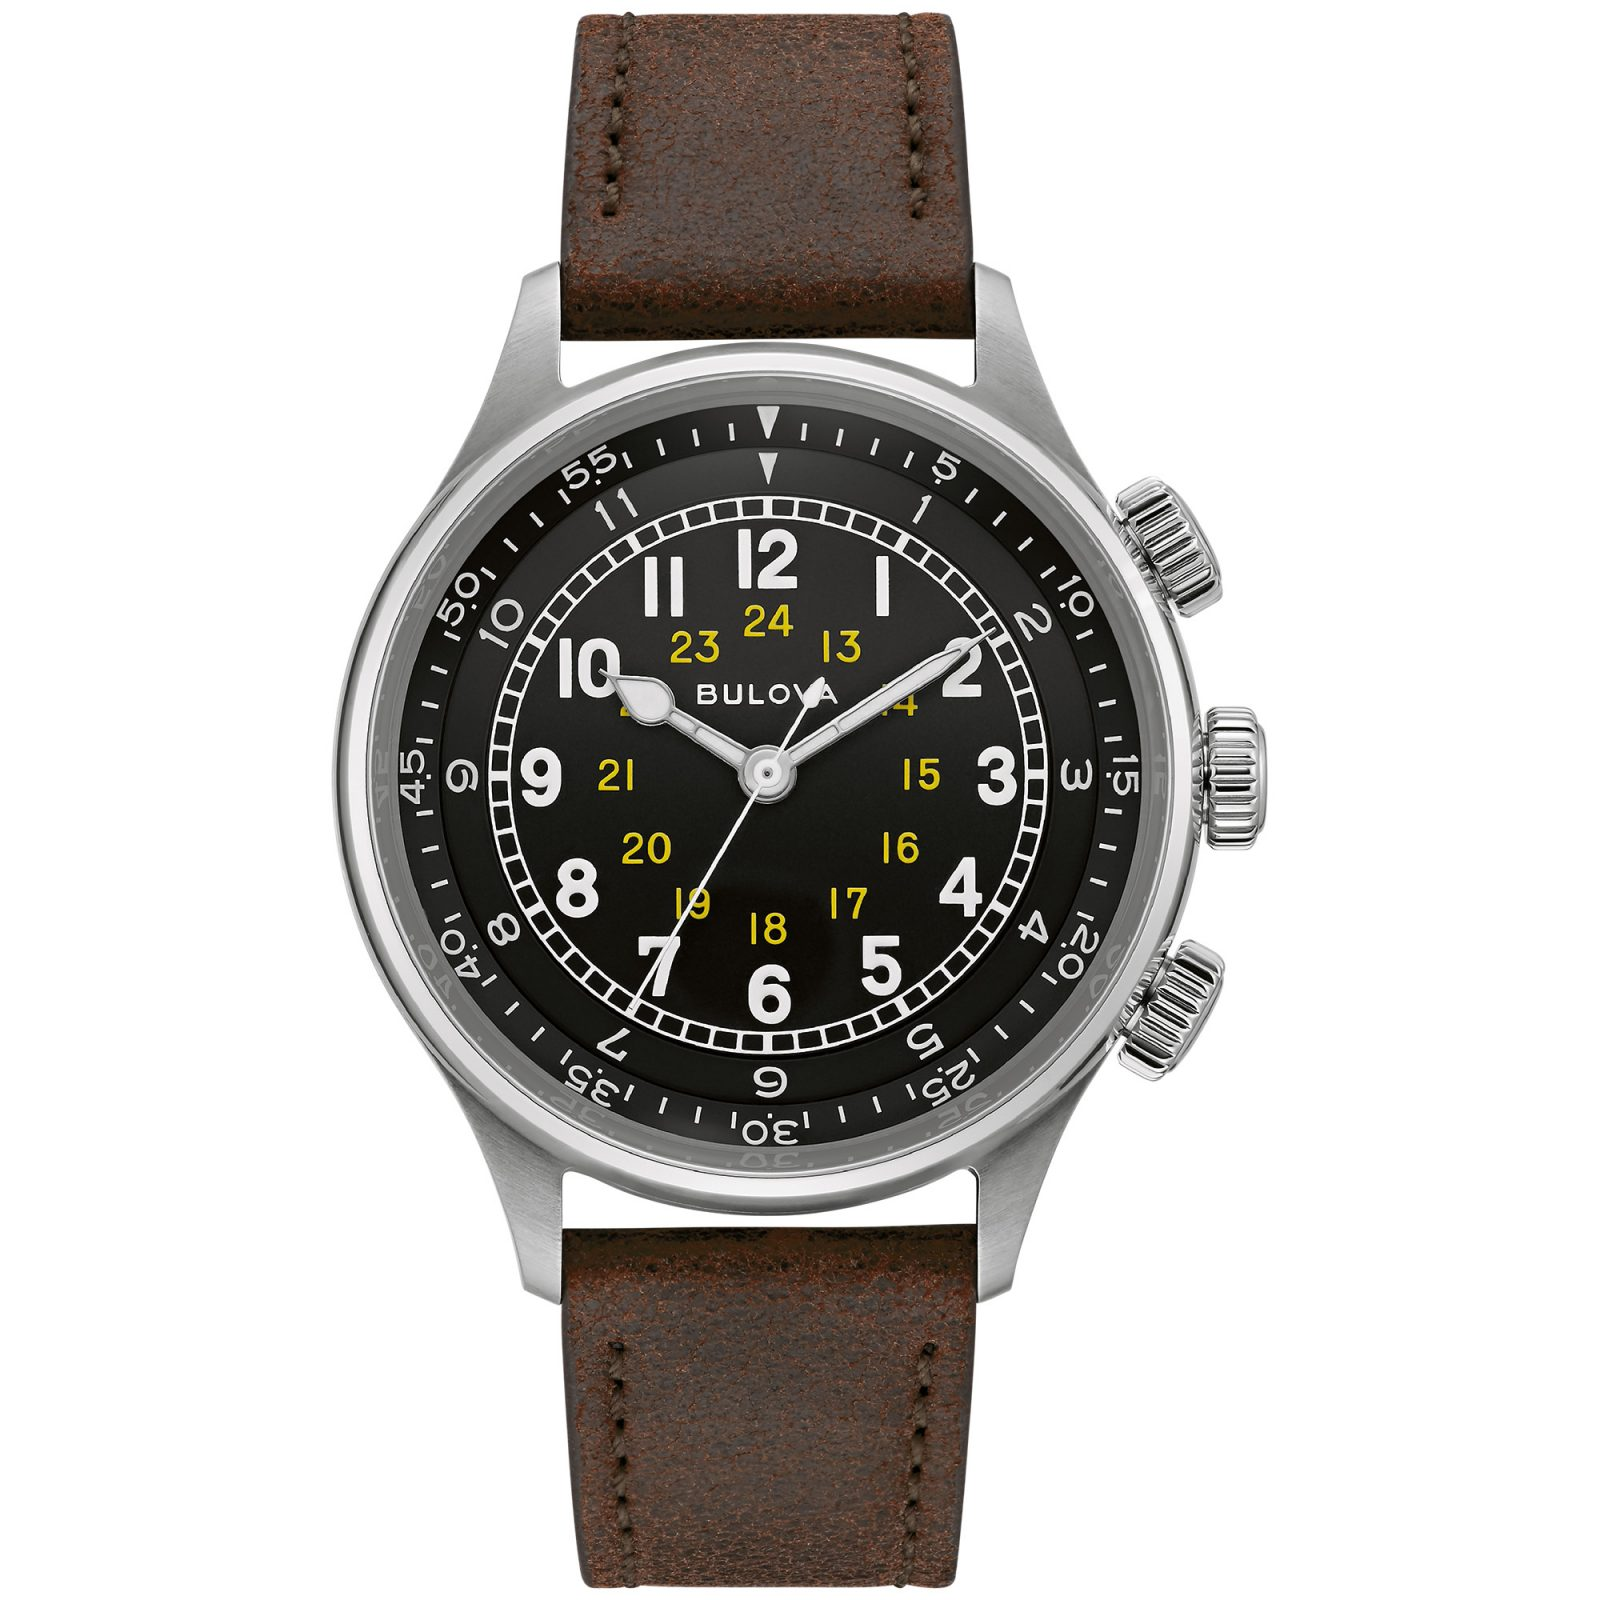 New Release: Bulova Military Hack & A 15 Pilot Watch Watch